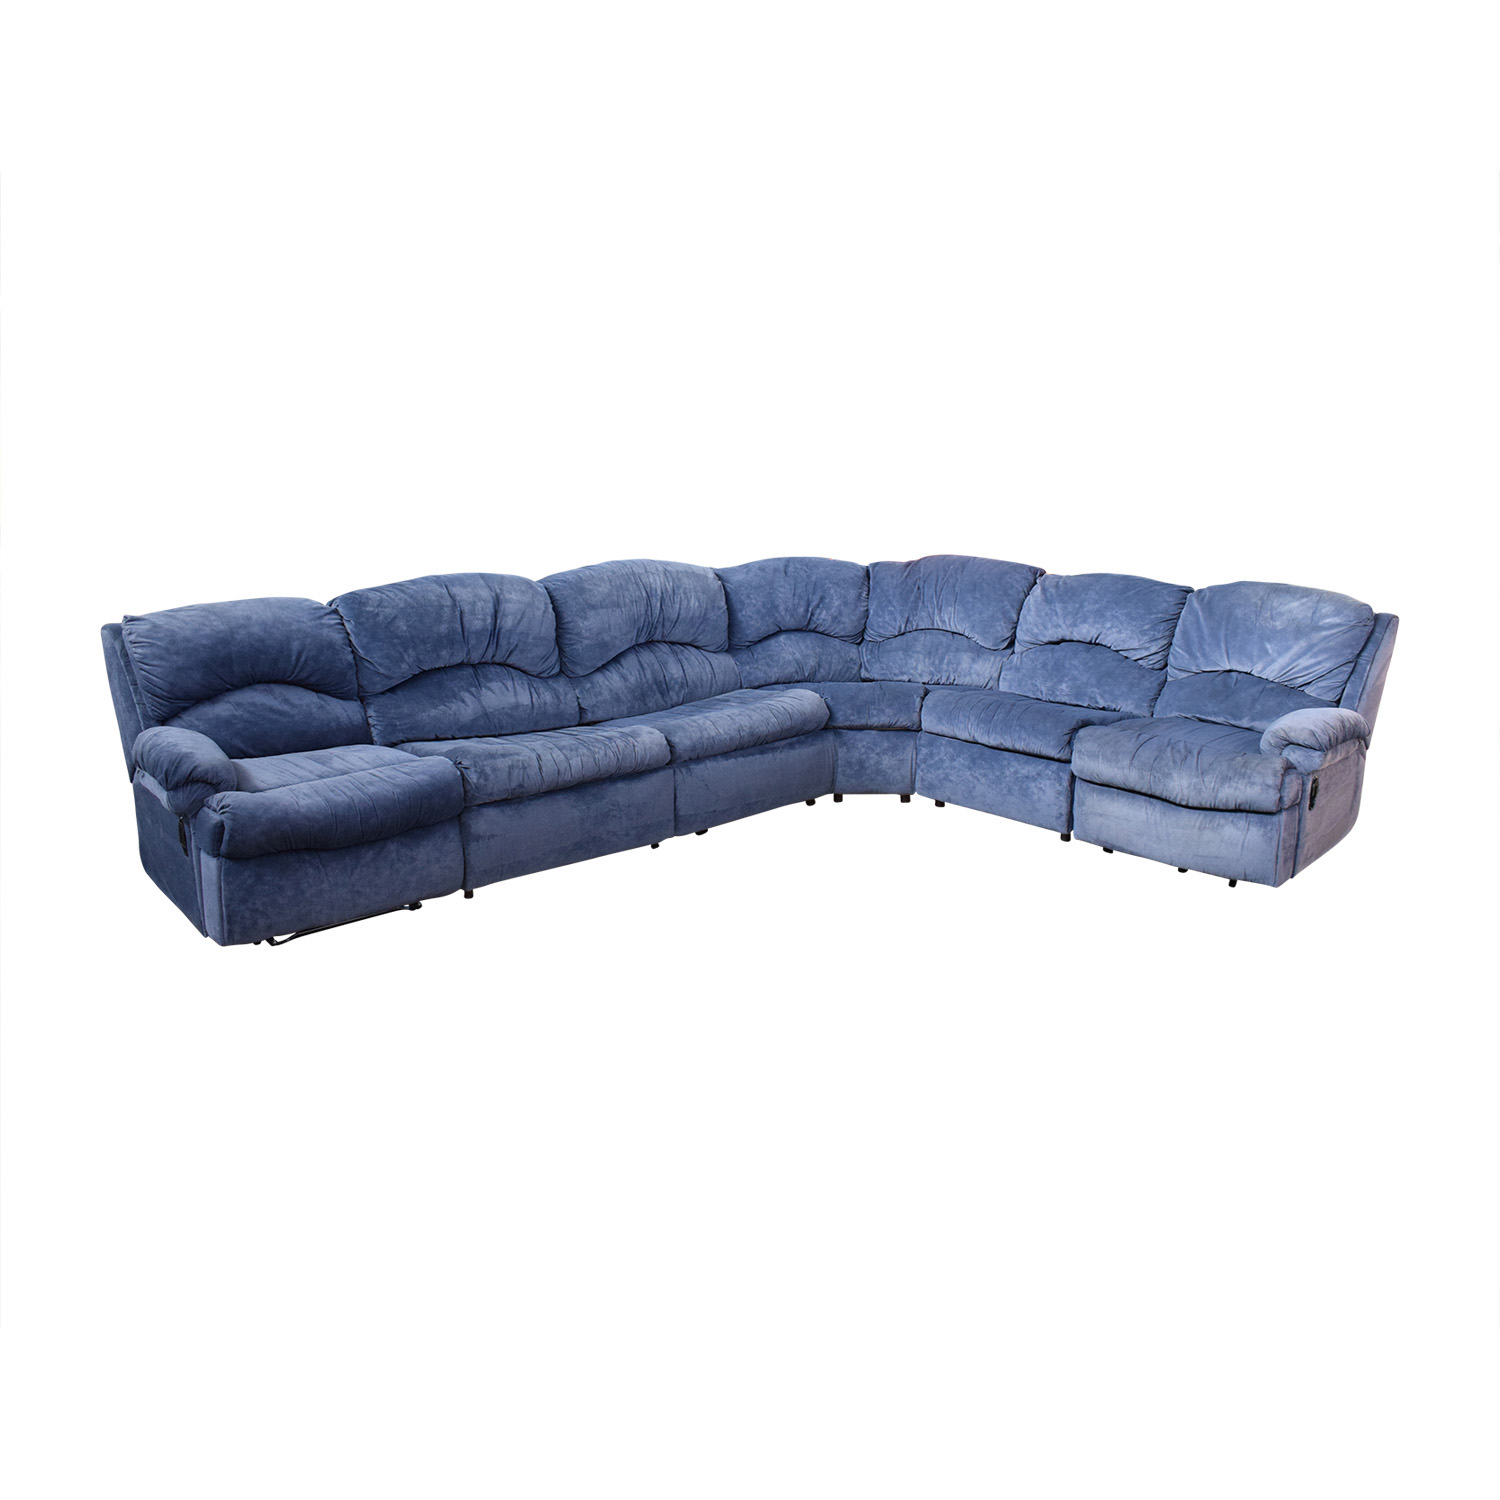 shop Raymour & Flanigan Raymour & Flanigan Sectional Sofa with Sleeper online